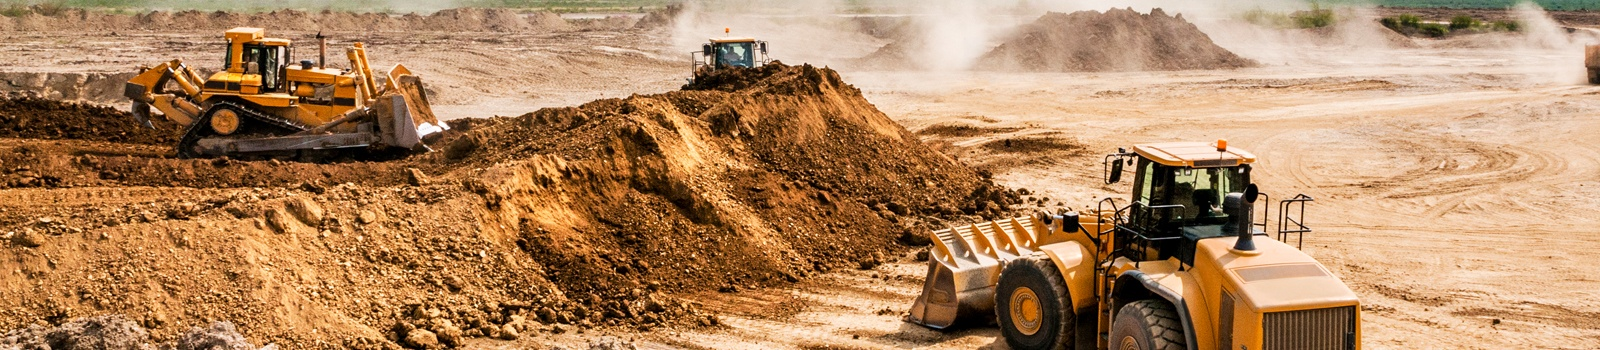 Financing for Site Prep and Construction Equipment